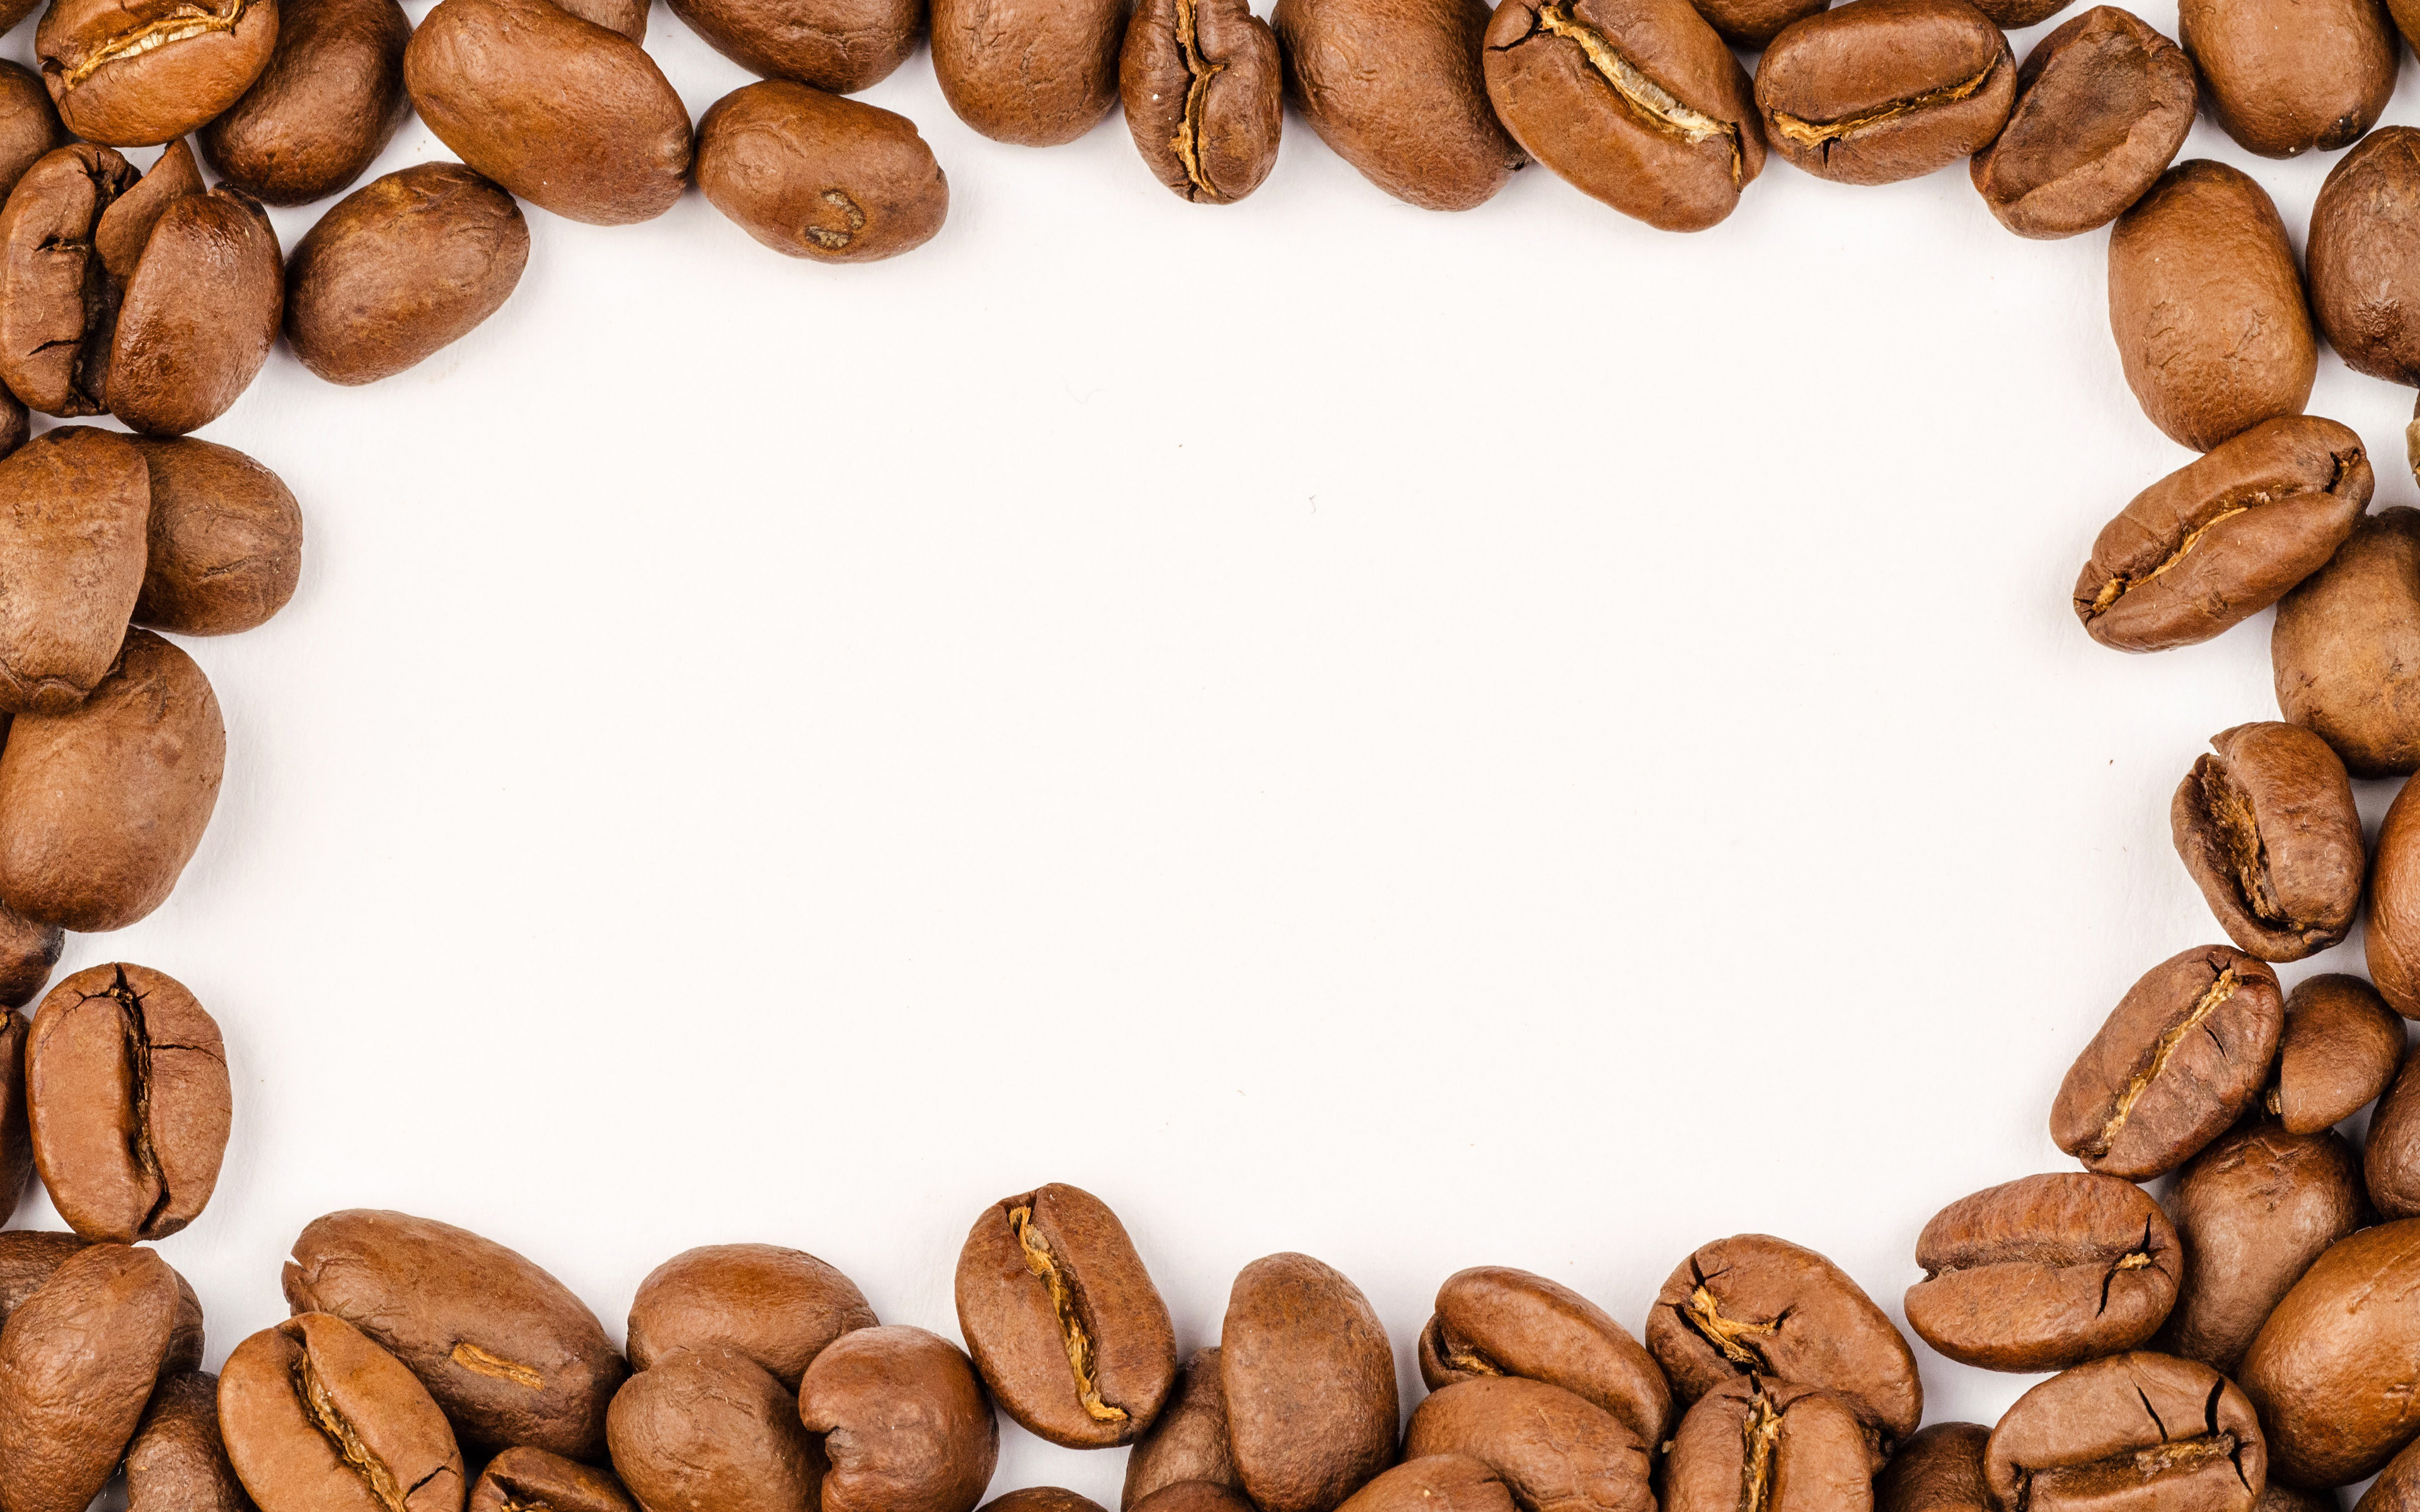 coffee beans frame, 4k, white background, artwork, creative, coffee beans, coffee